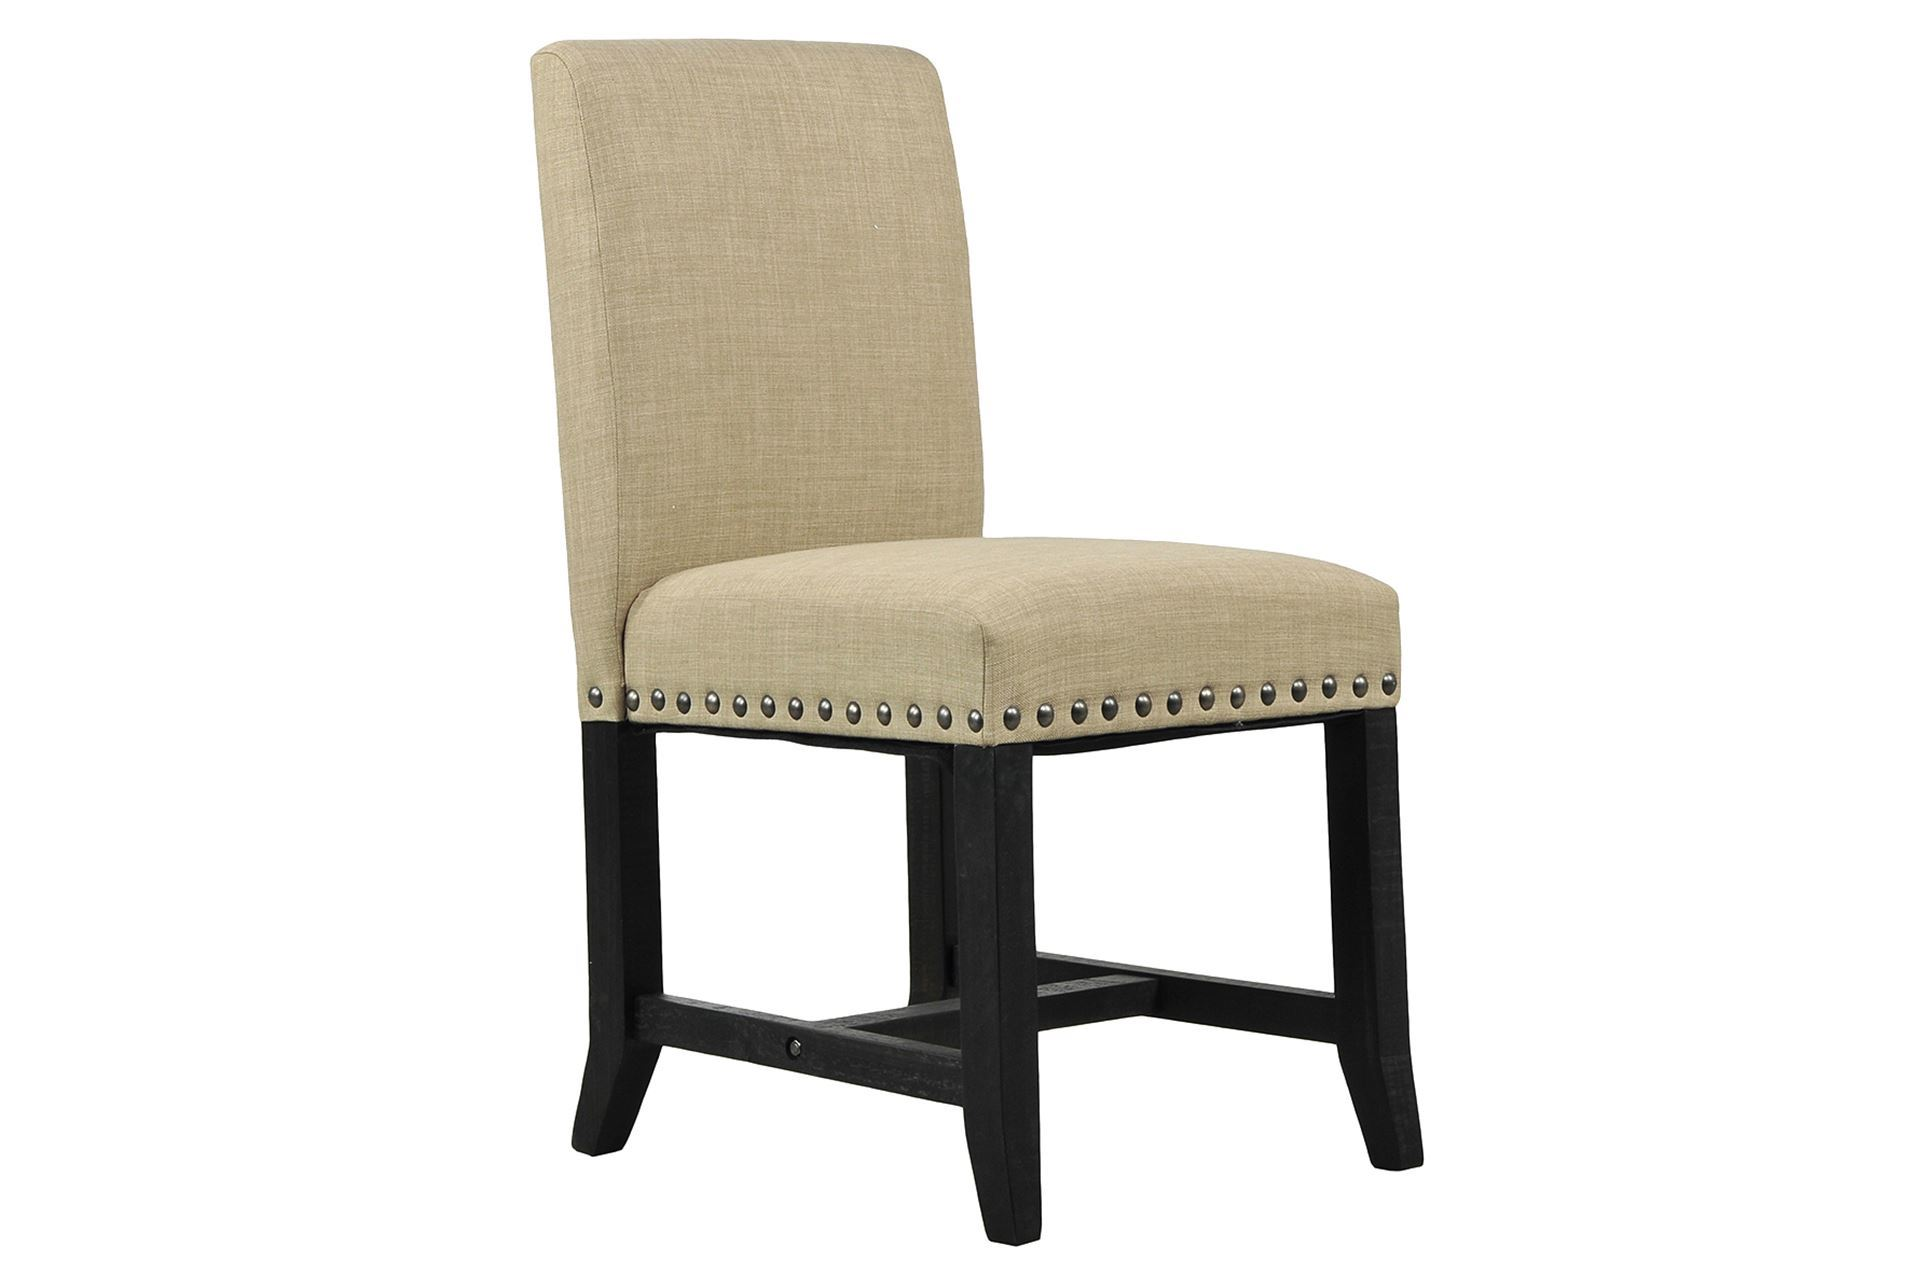 Jaxon upholstered side chair living spaces - Upholstered chairs for small spaces concept ...